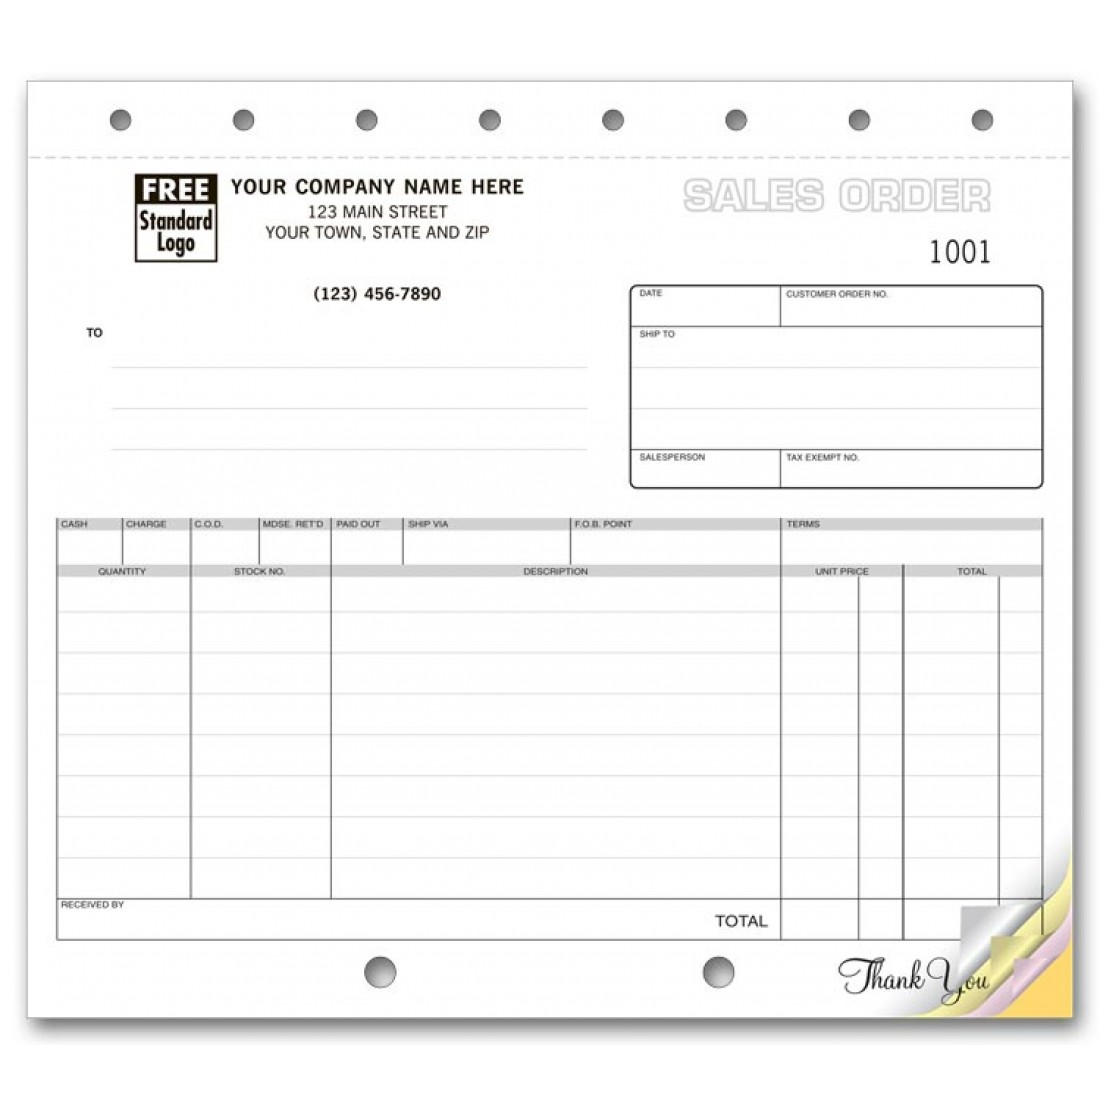 Compact Sales Order Forms